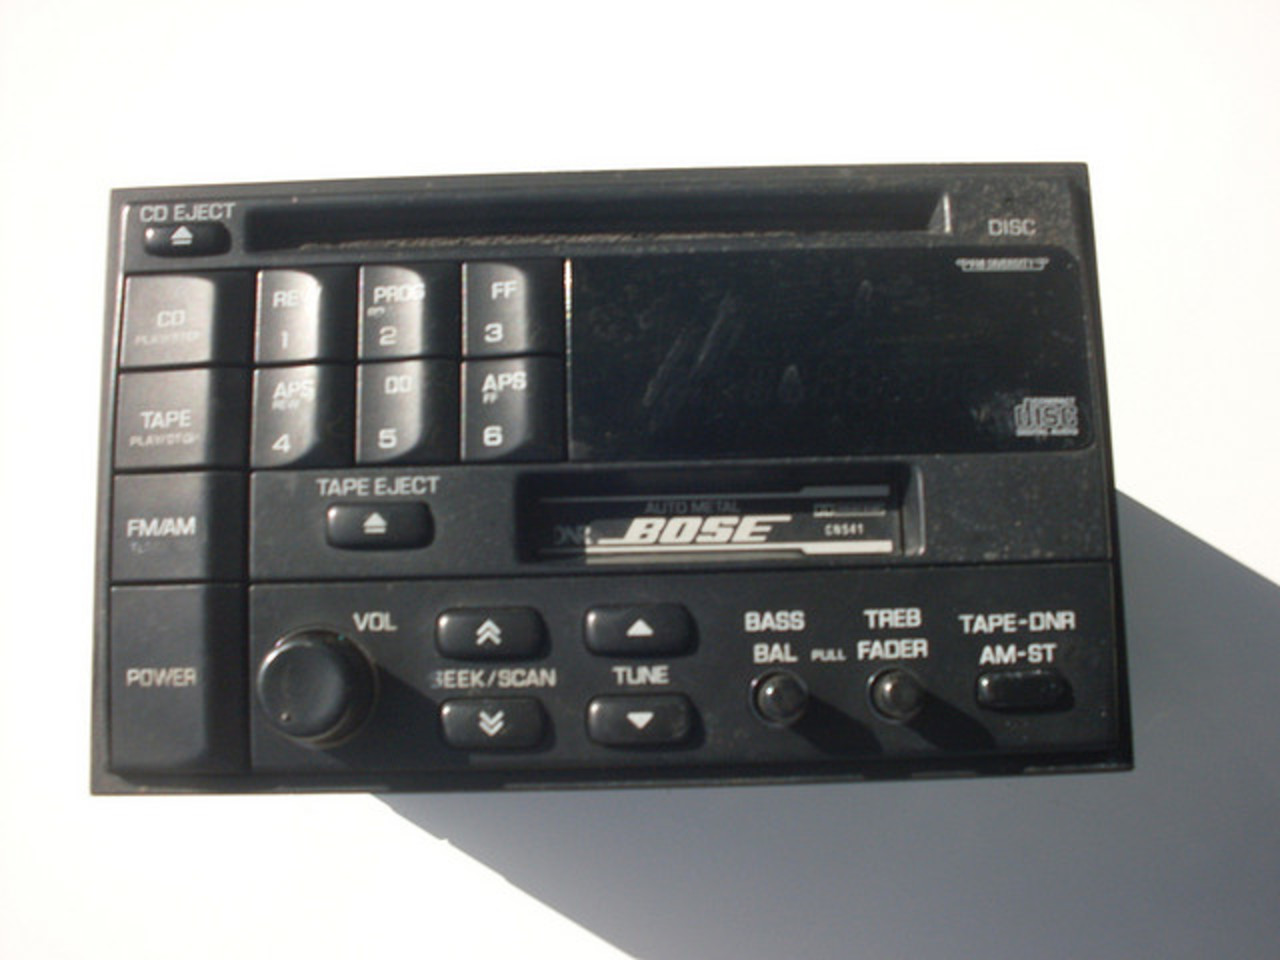 1996 Nissan Infiniti Bose CD Player | Flickr - Photo Sharing!